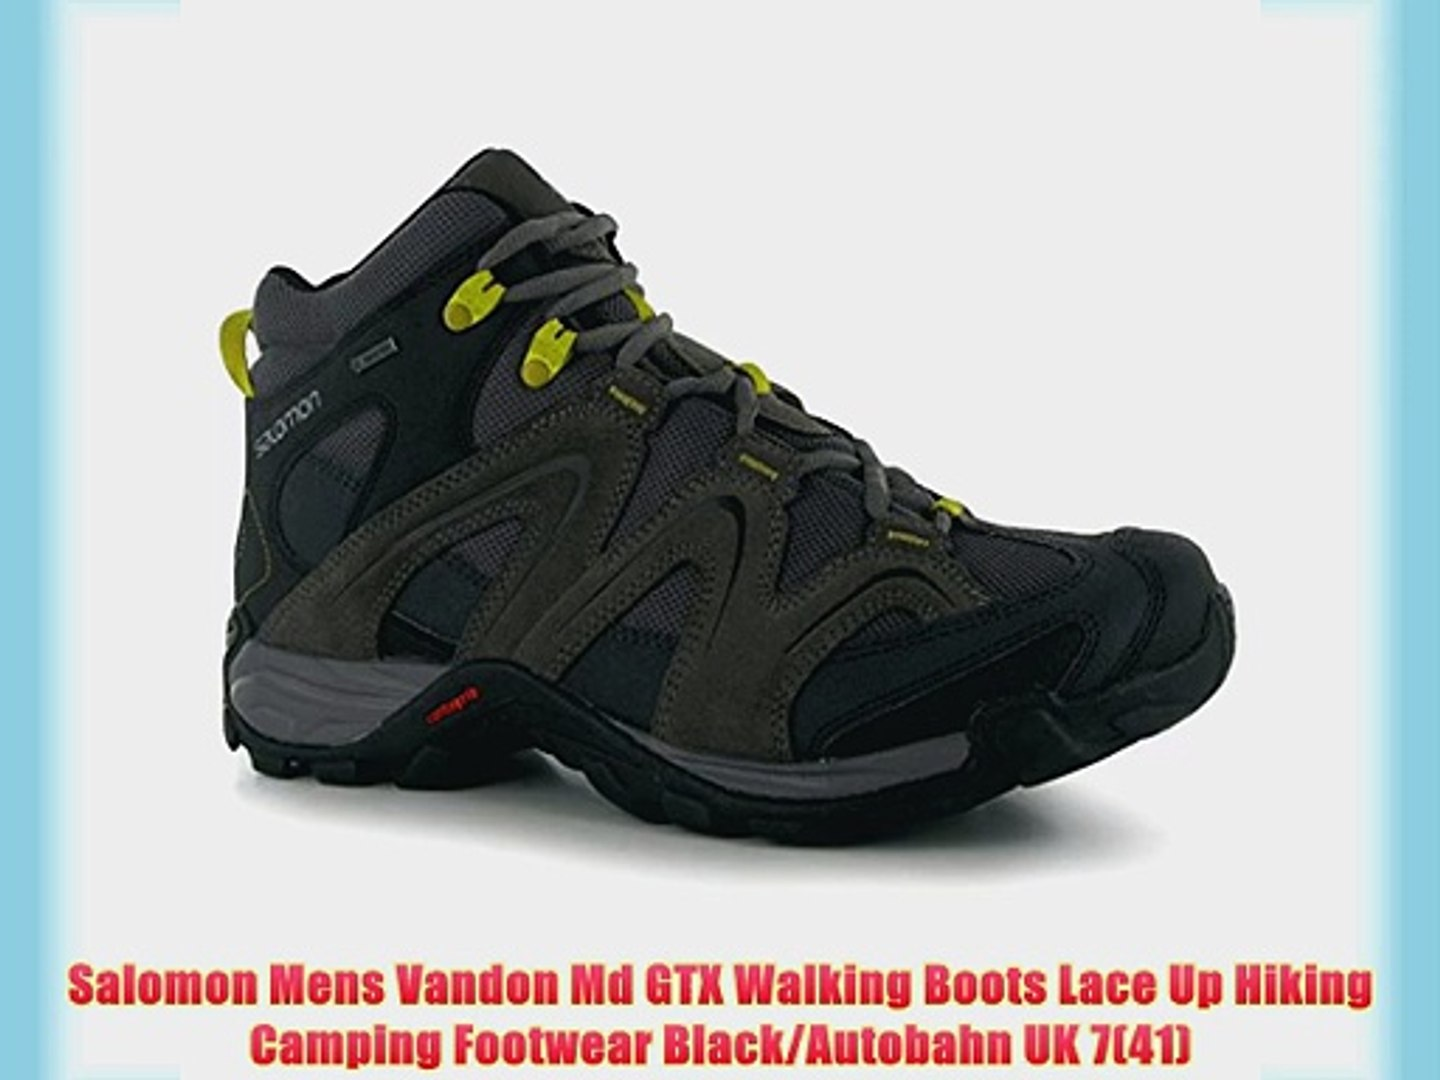 Salomon Mens Vandon Md GTX Walking Boots Lace Up Hiking